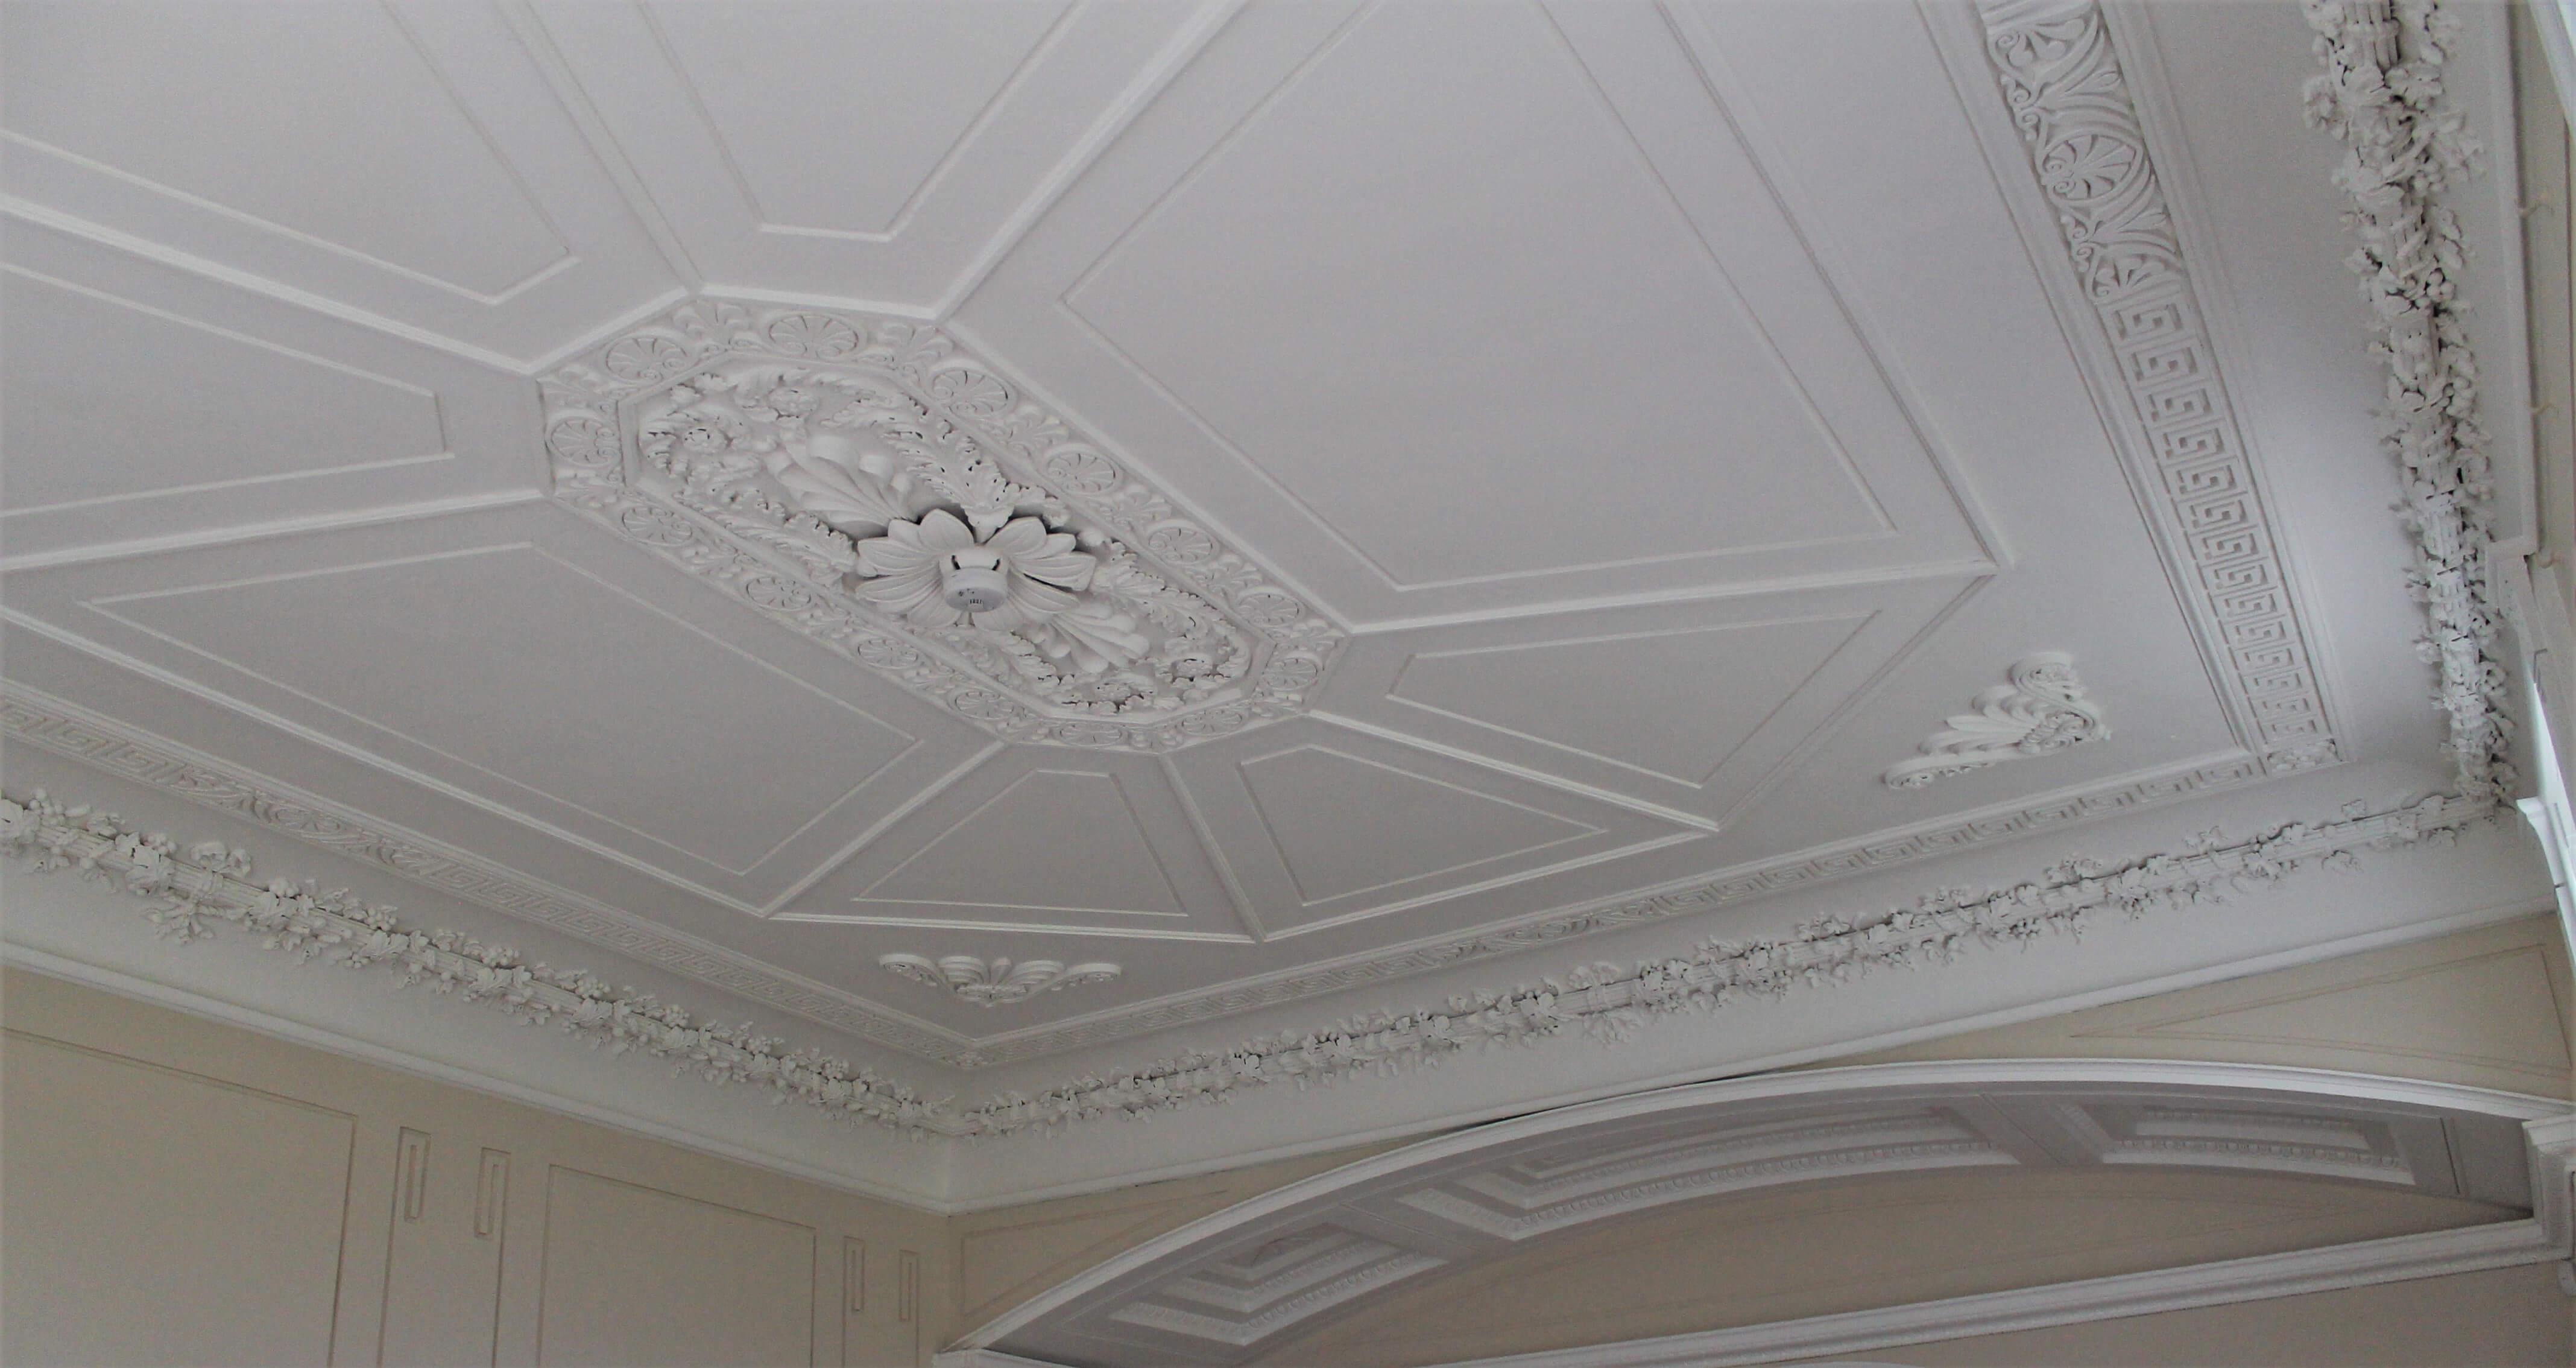 Greenbank Ornate ceiling